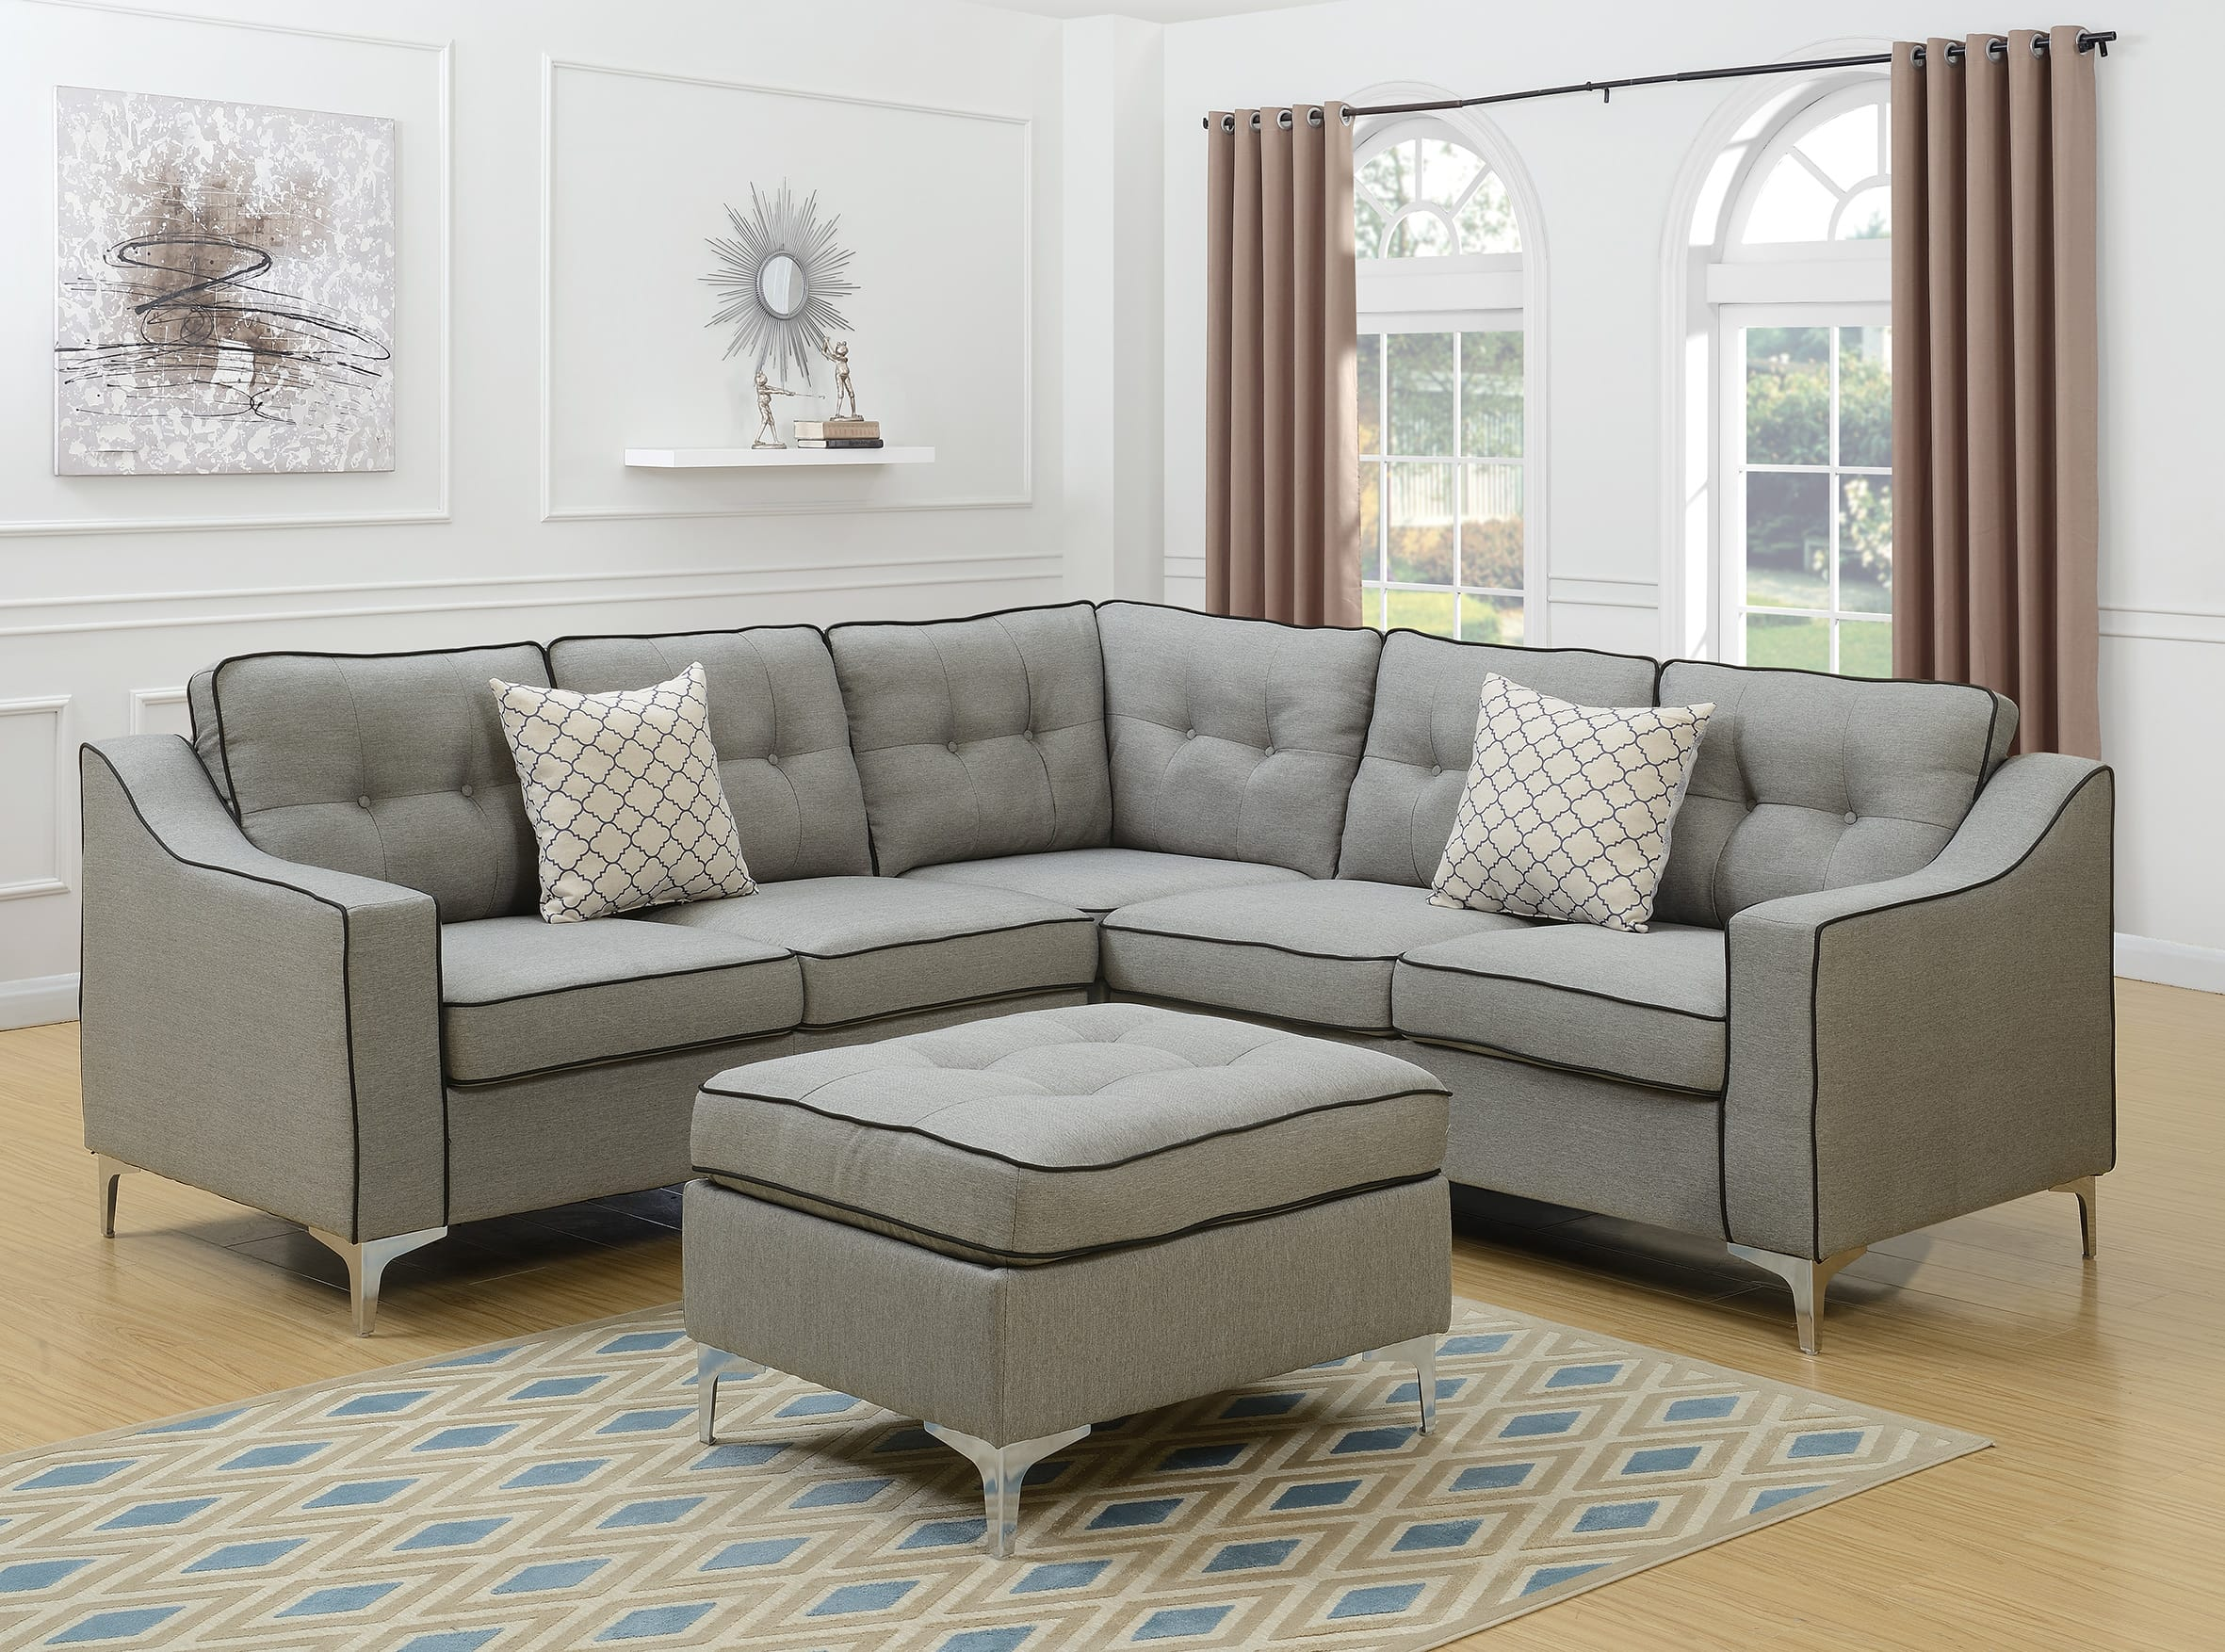 F6998 light gray 4 pcs sectional sofa set by poundex for 4 pcs sectional sofa